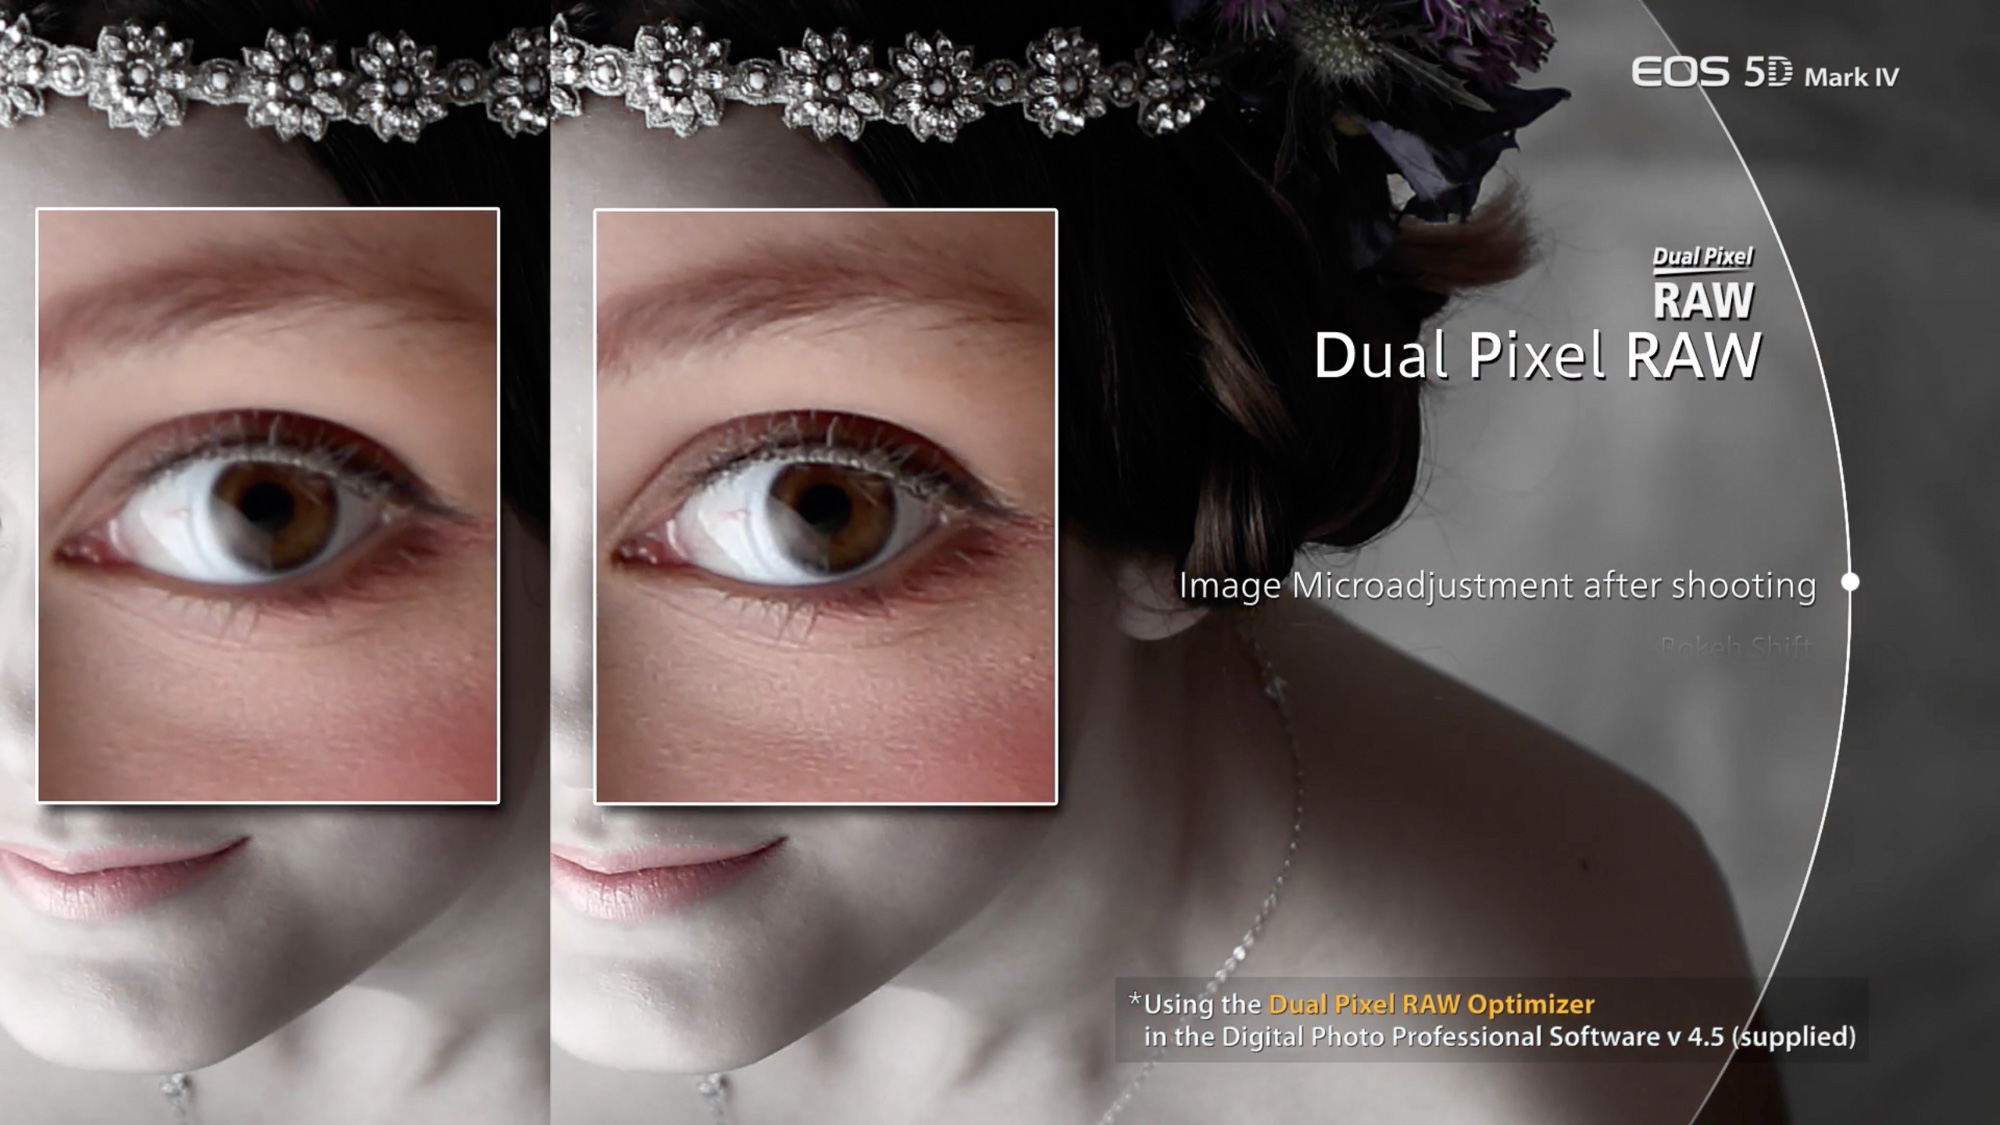 Adobe doesn't Support 5D Mark IV's Dual Pixel RAW – Camera